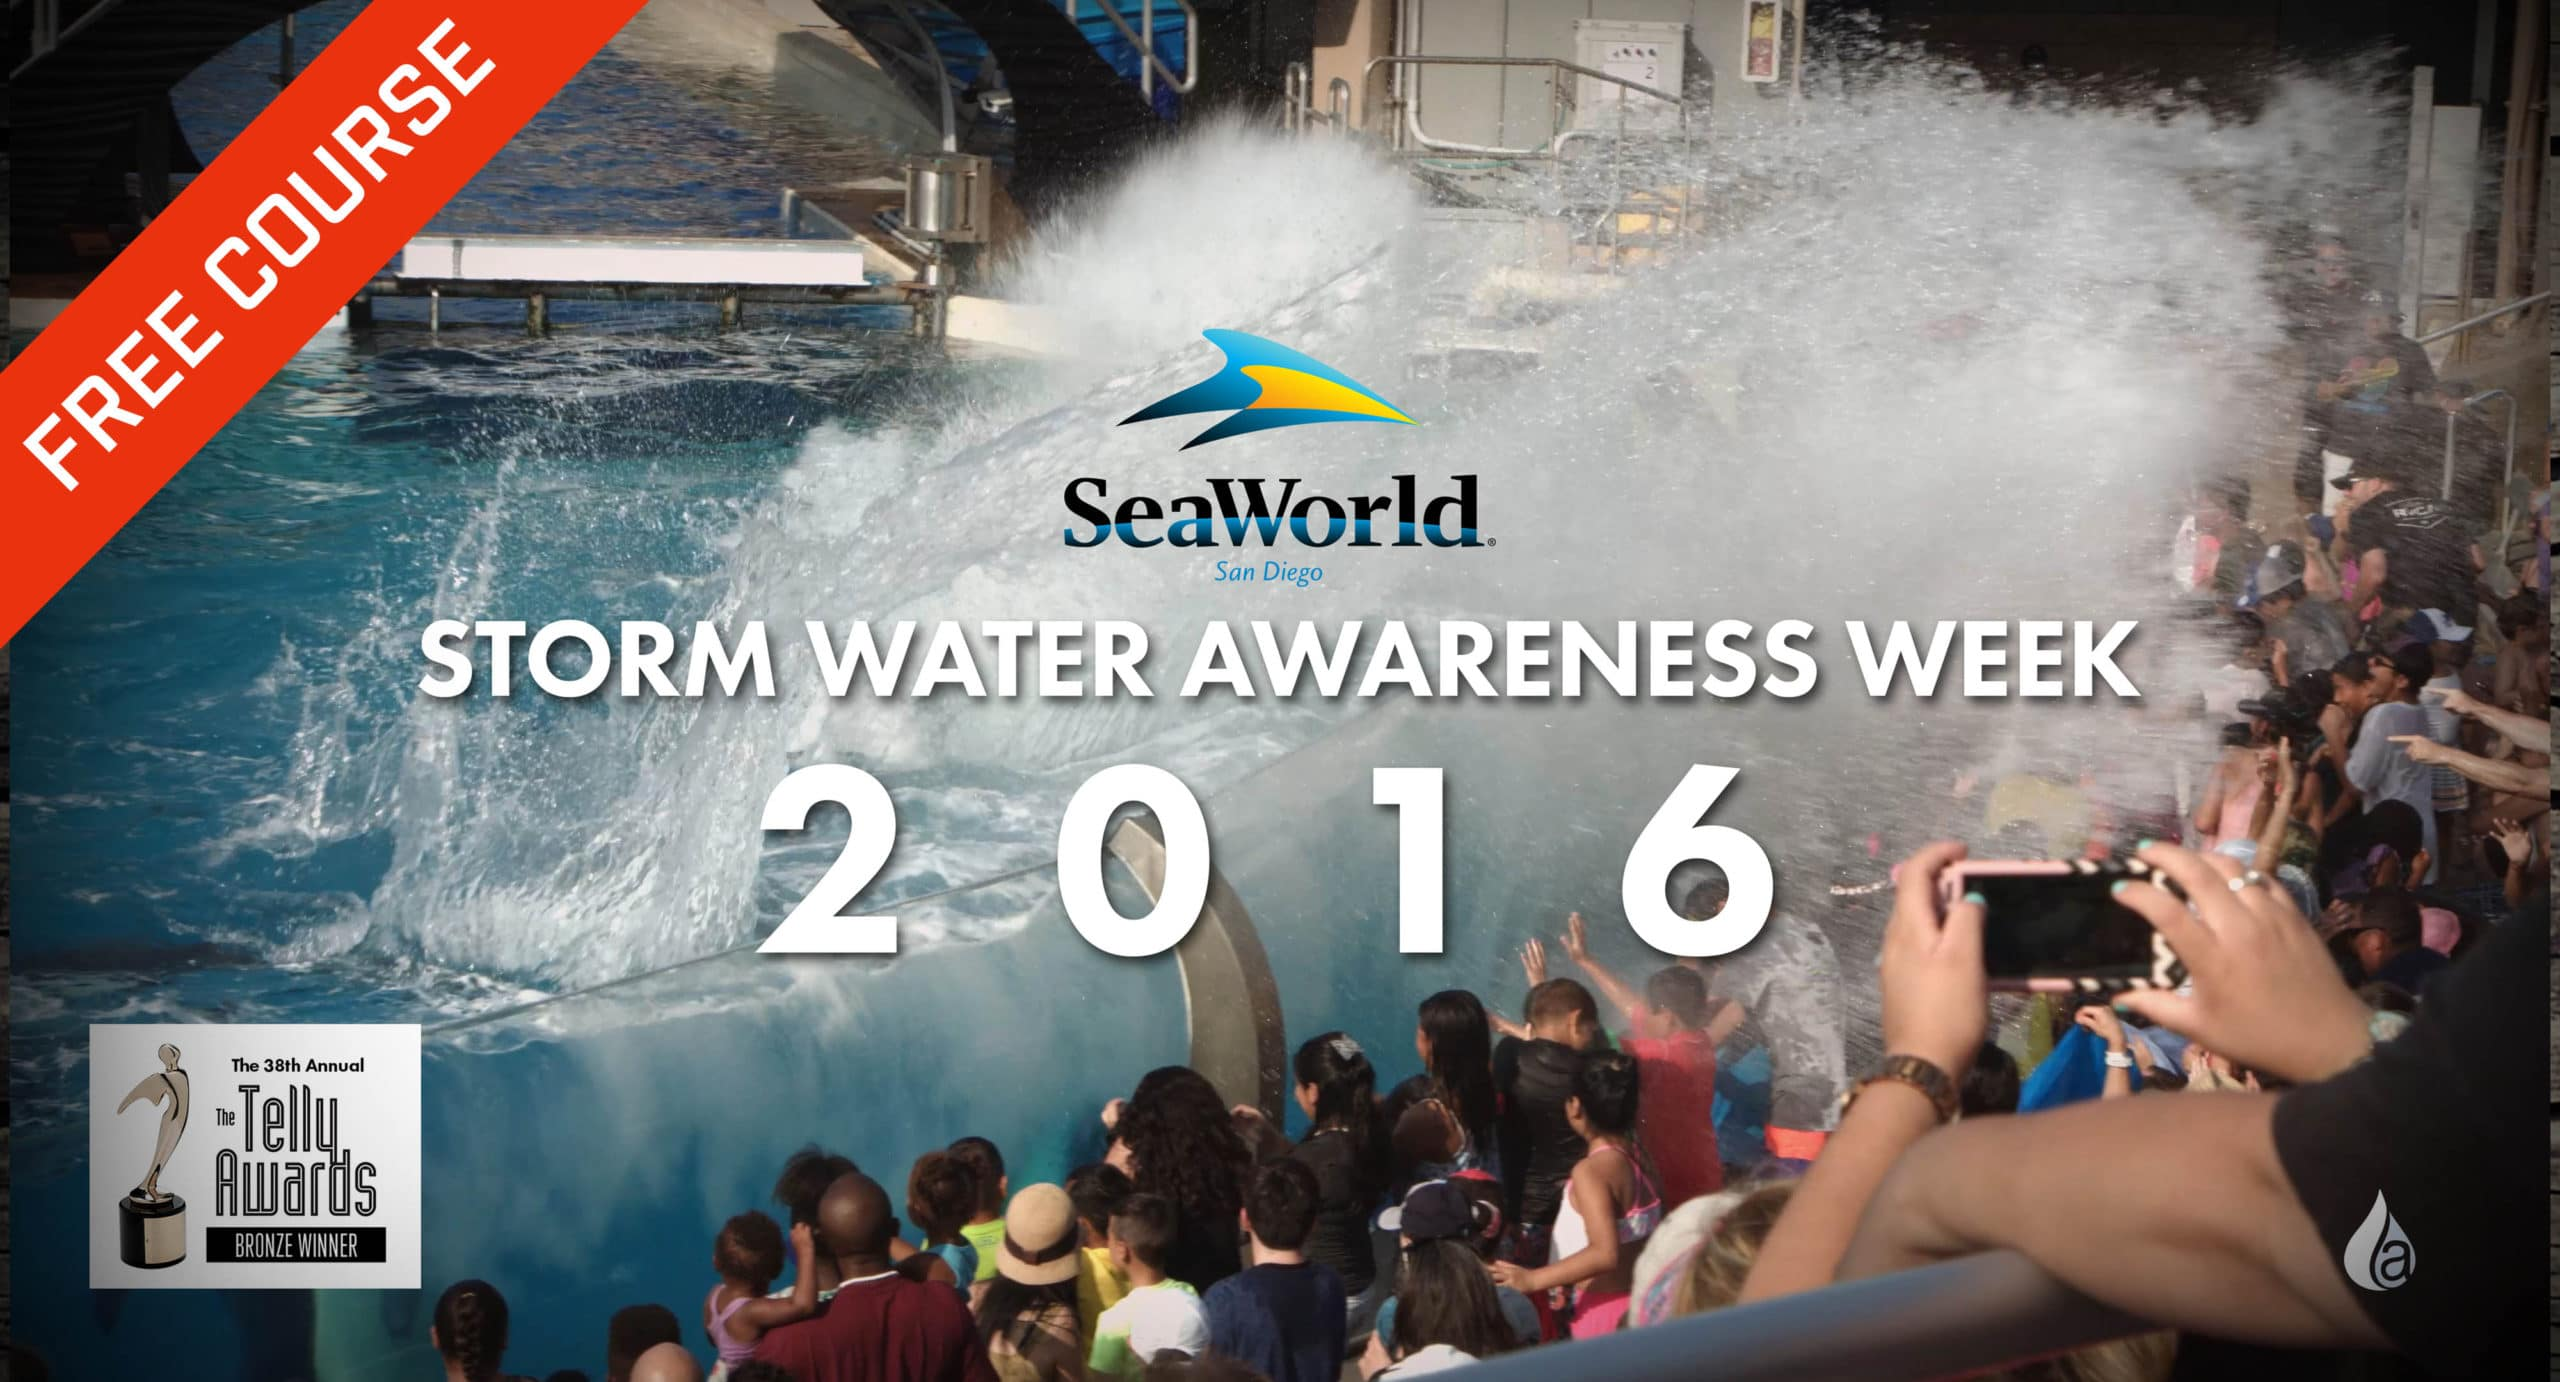 Storm Water Awareness Week 2016